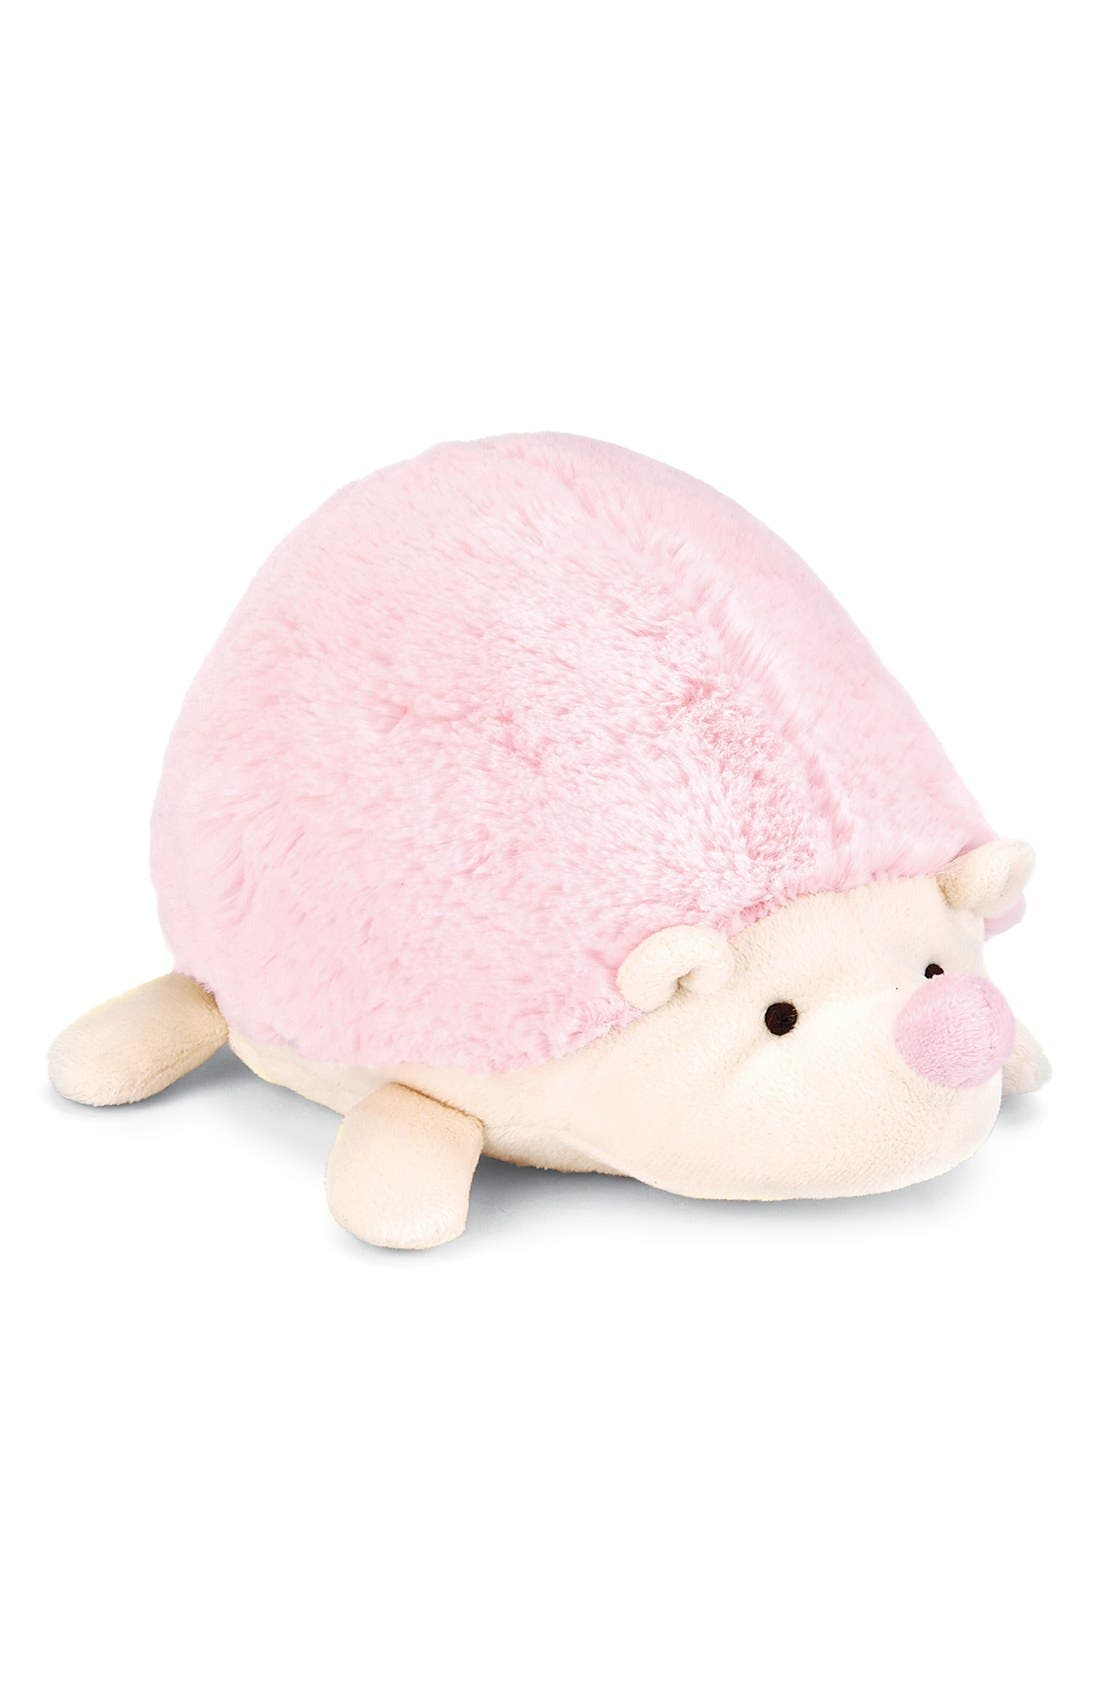 Main Image - Jellycat 'Happy Pink Hedgehog' Stuffed Animal